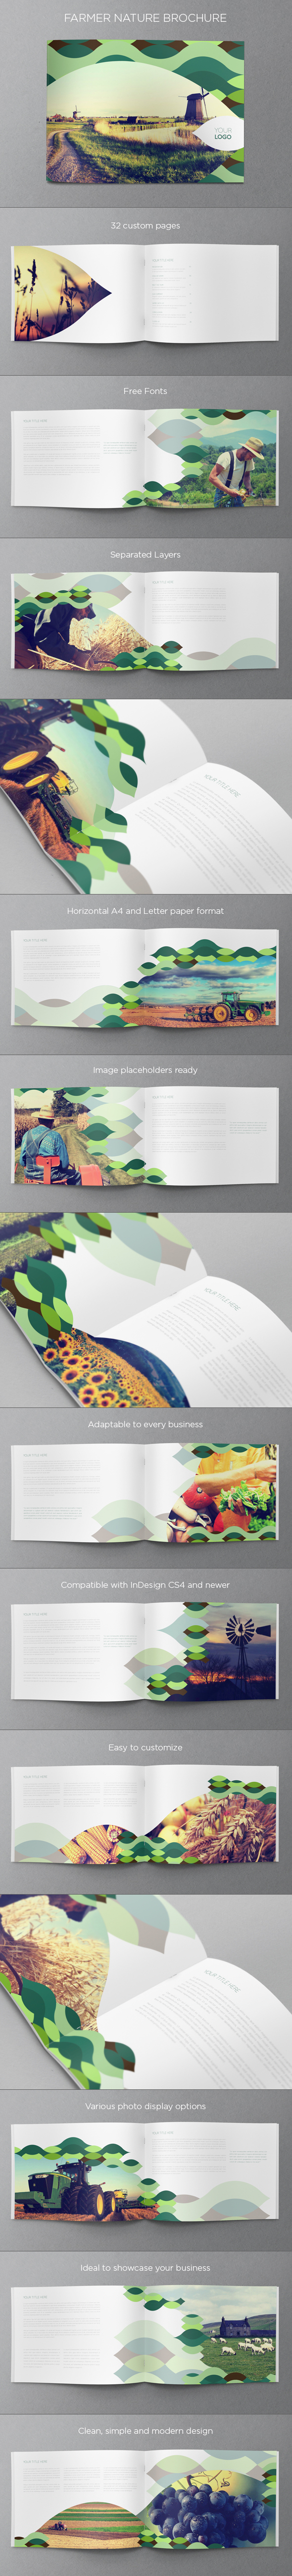 Green Modern Ecologic Brochure | Brochures, Modern and Layouts